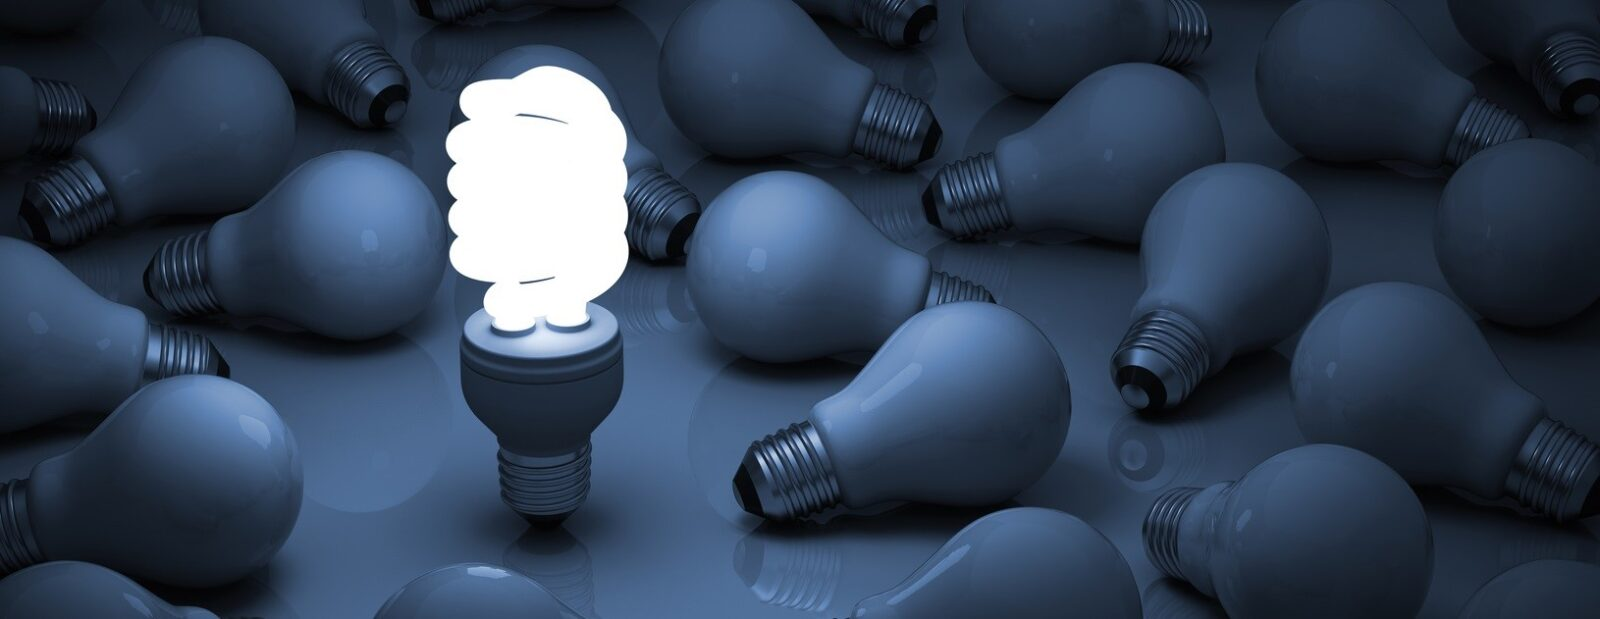 Save Energy With Light Bulbs